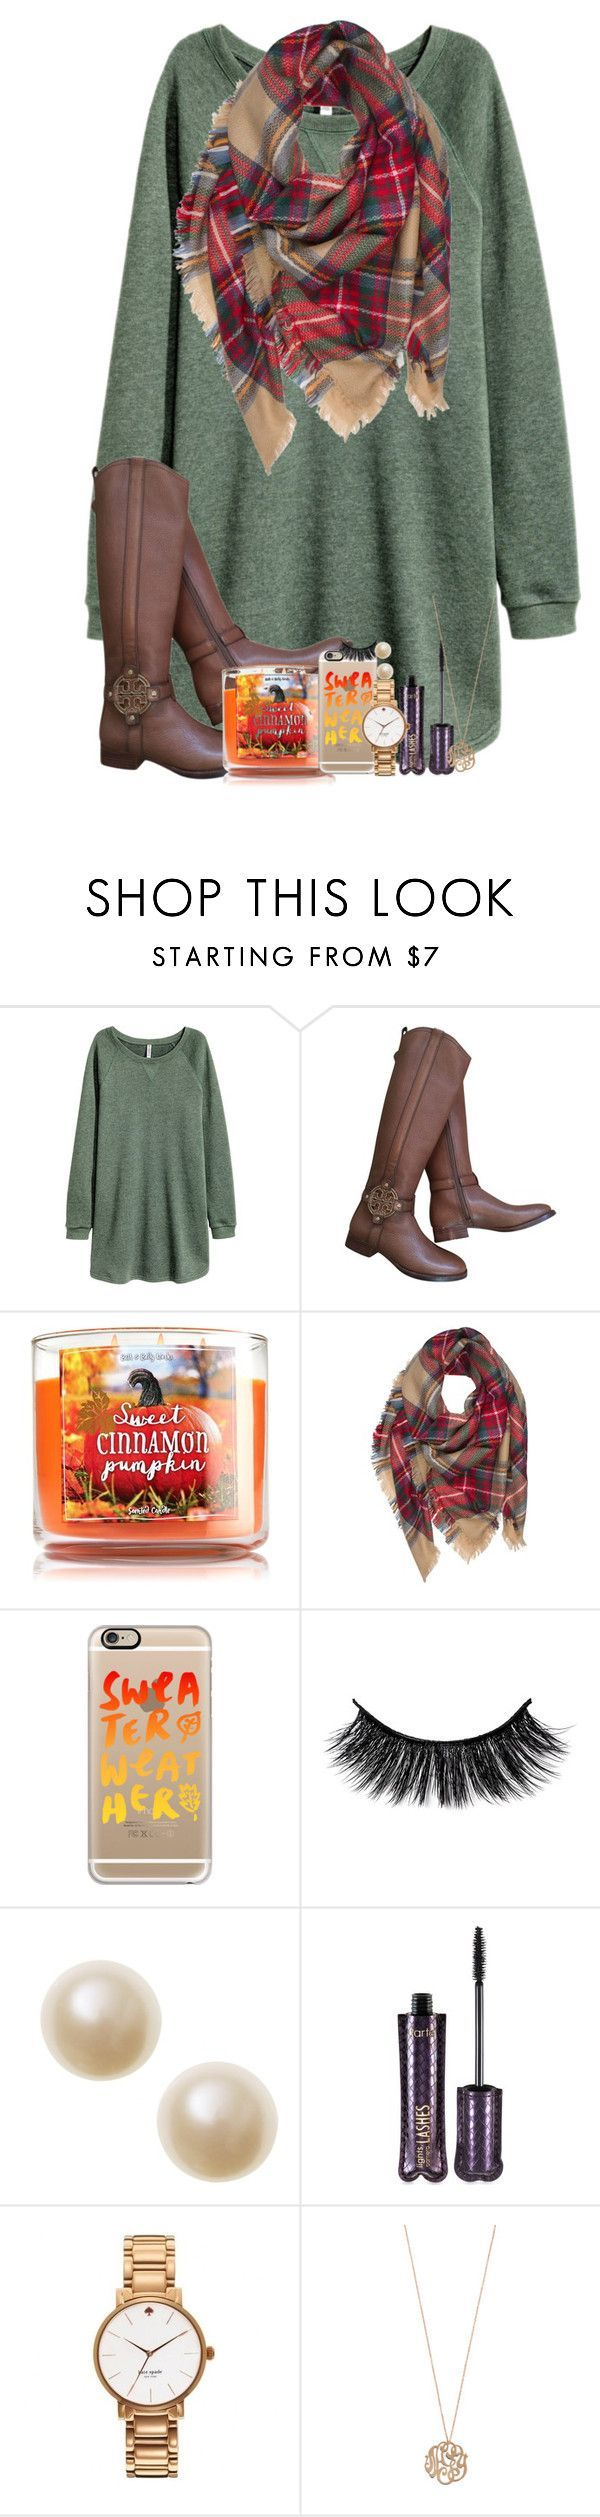 """even the leaves fall for you my love"" by legitmaddywill ❤️ liked on Polyvore featuring Tory Burch, Casetify, tarte, Kate Spade and Ginette NY"